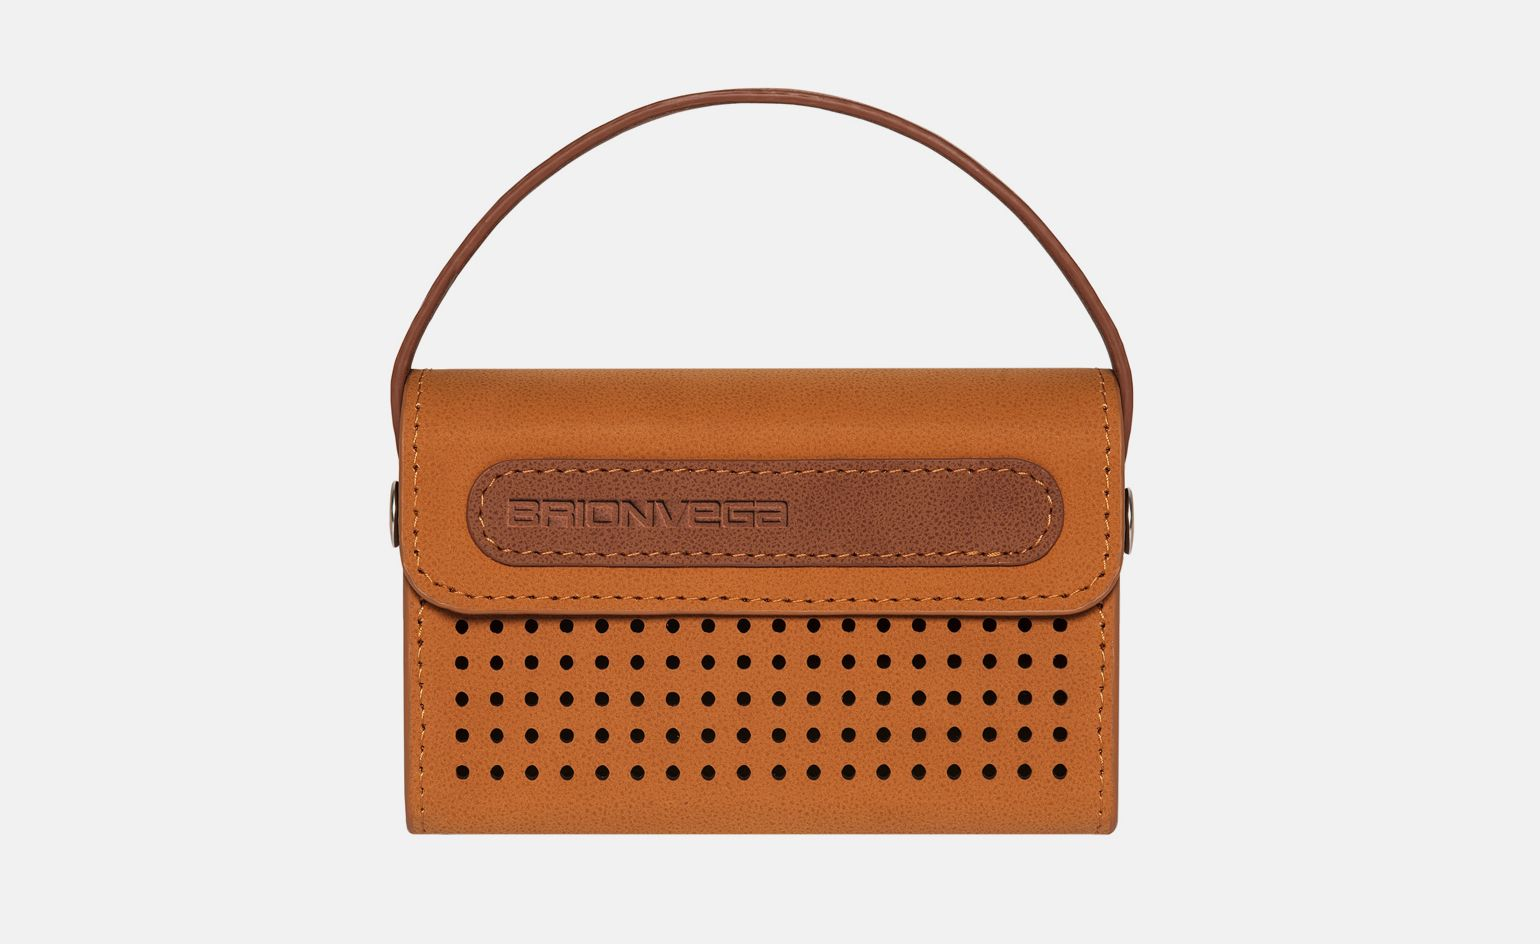 Michael Young has collaborated withItalian audio brand Brionvega to createWearIt, a new portable speaker design that expertly pairs the past with the present